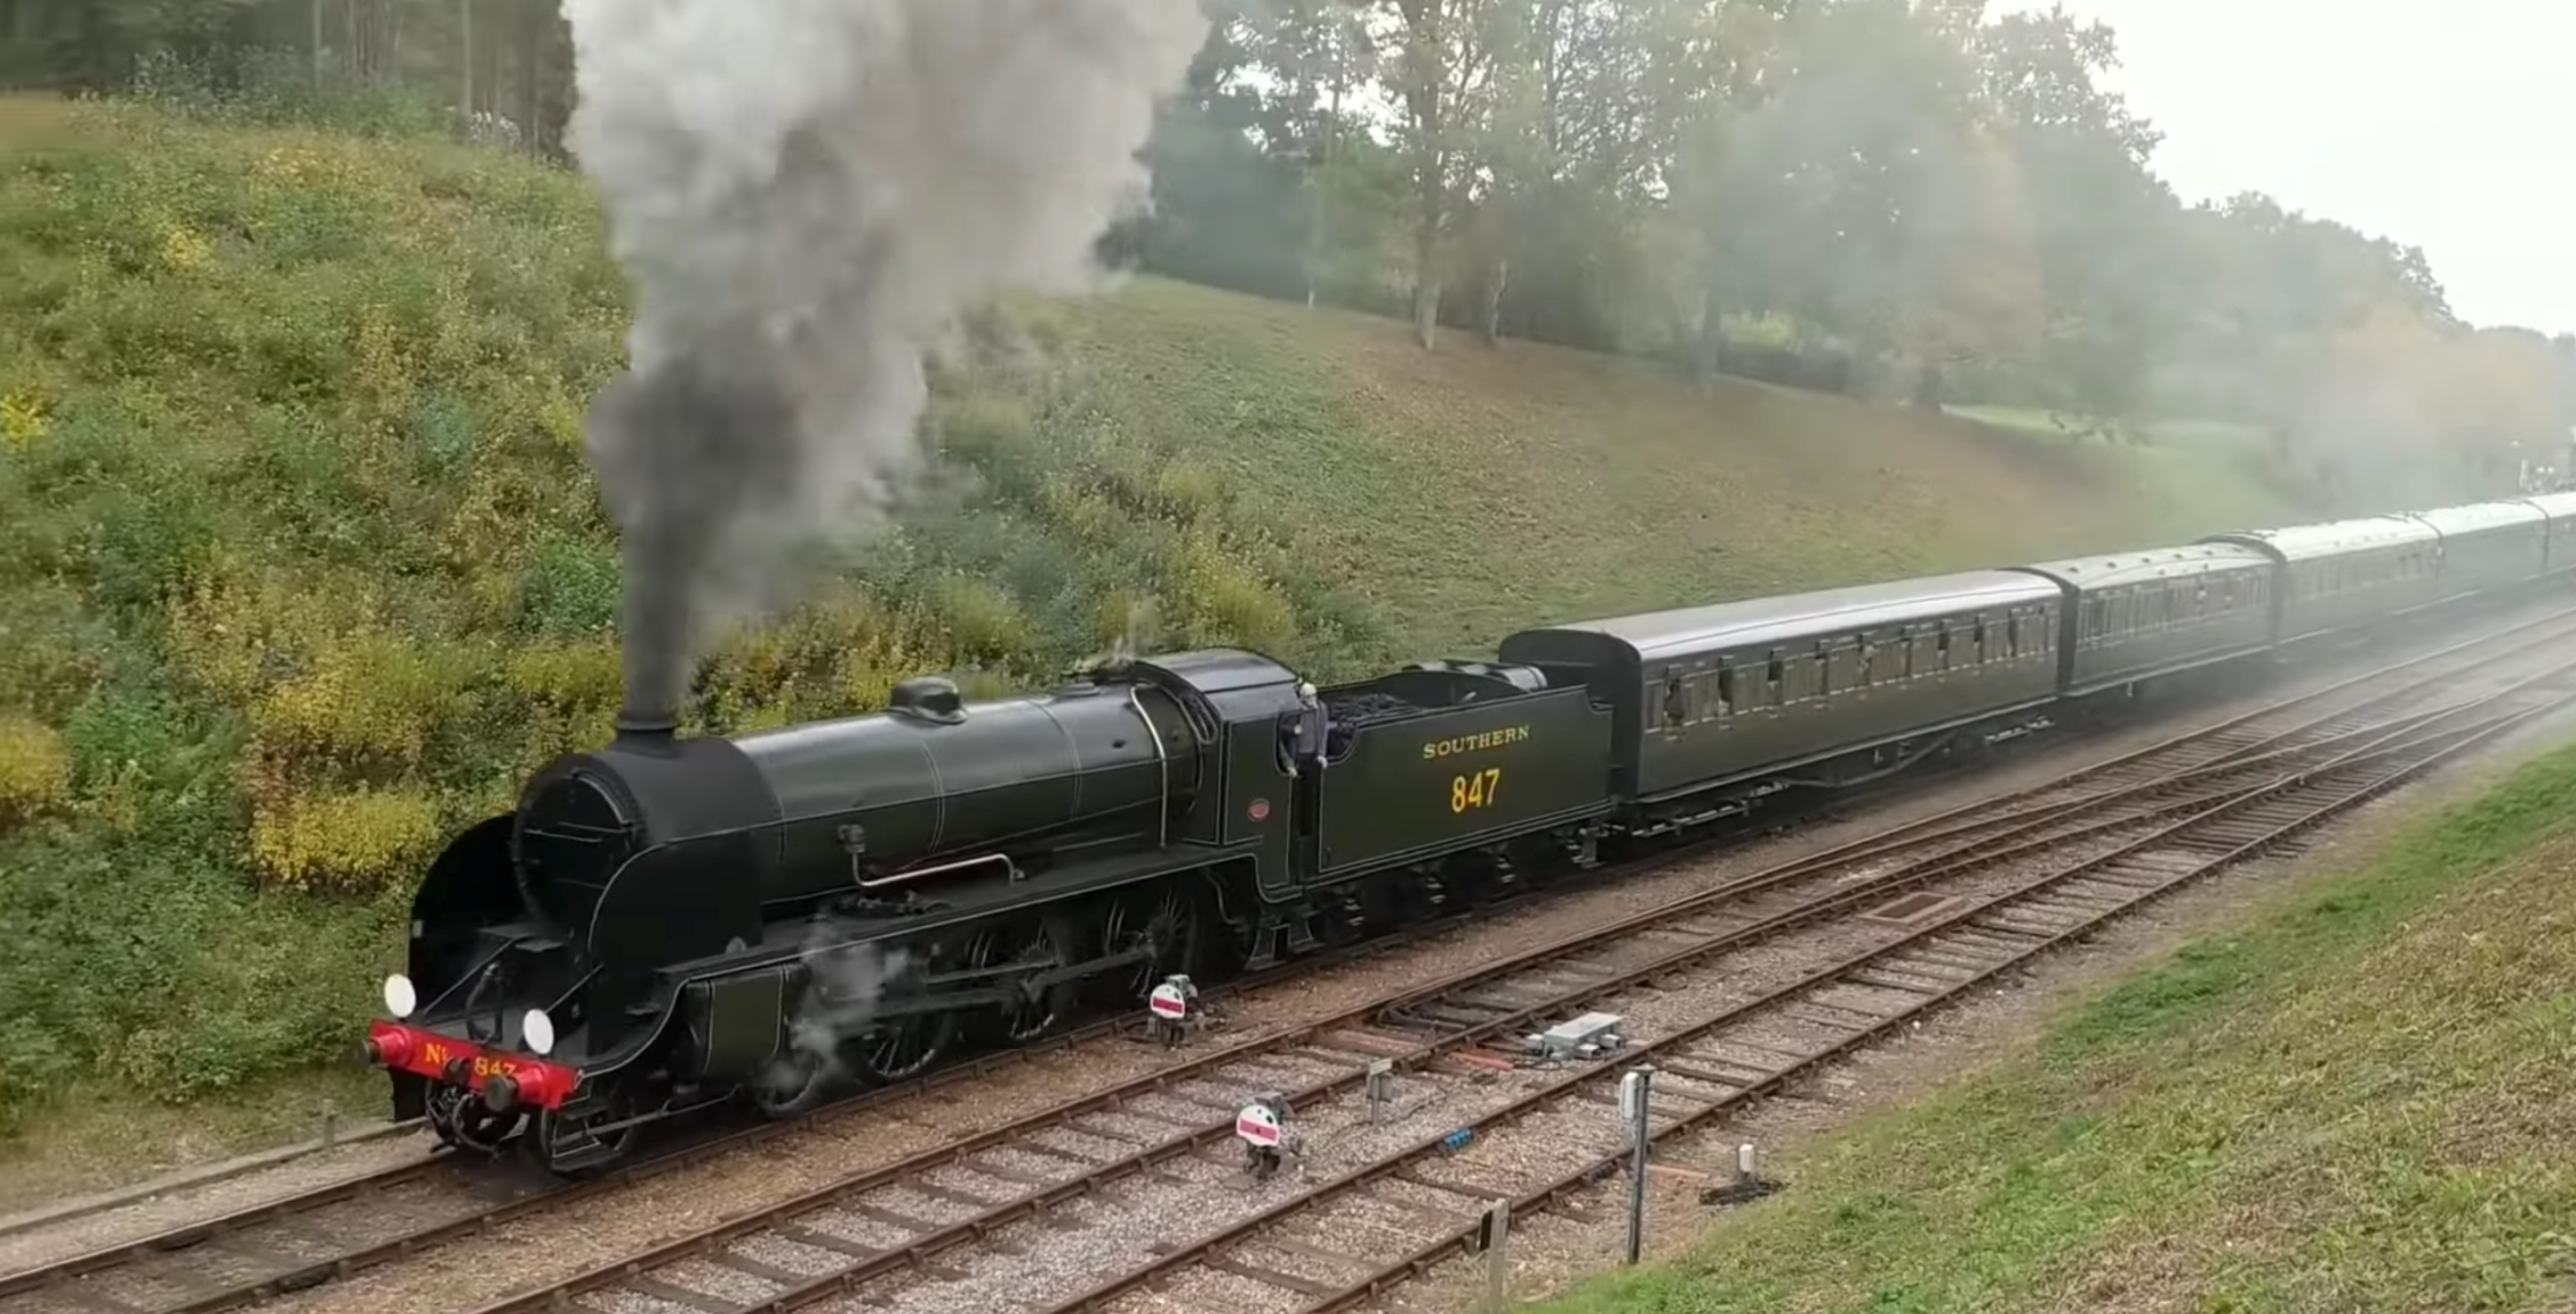 S15 Class 847 Horsted Keynes